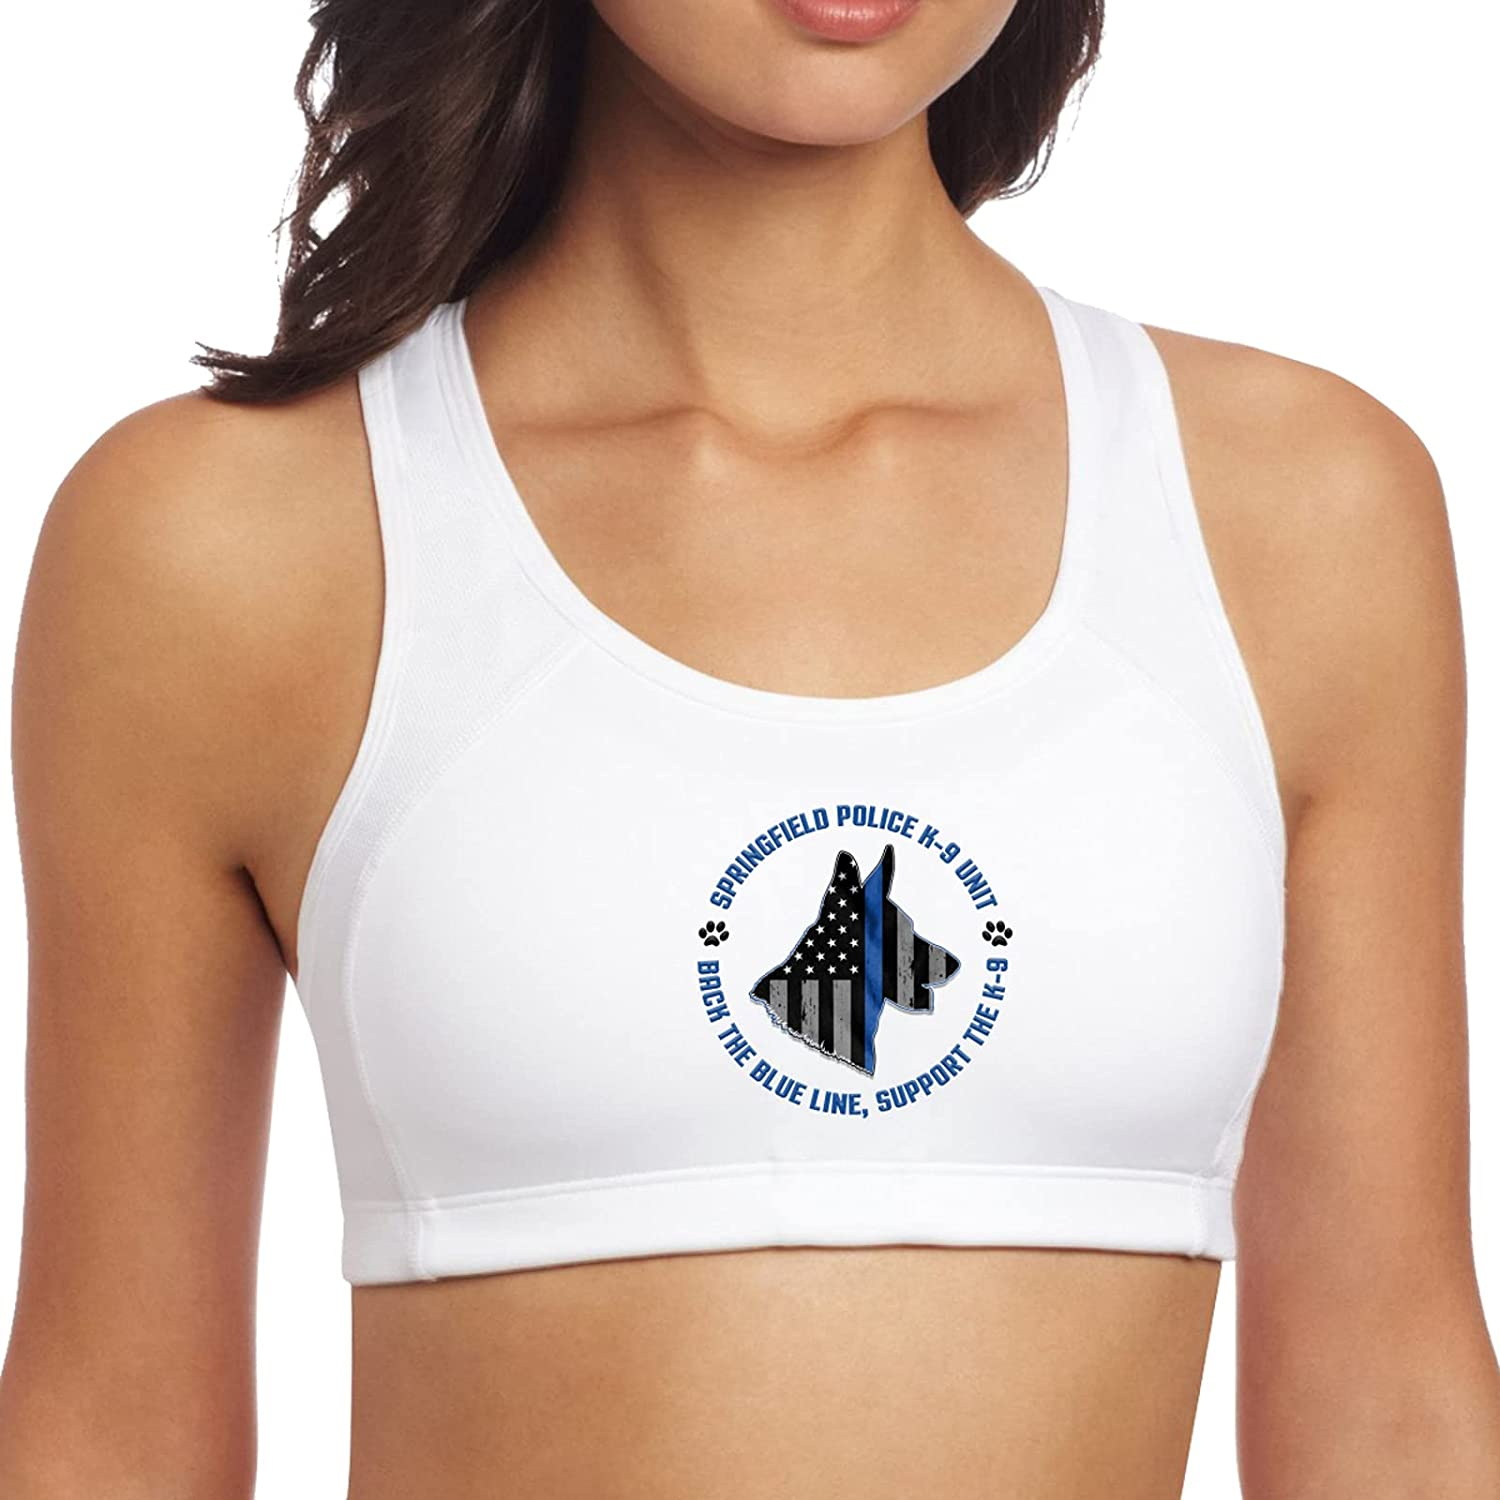 Police K9 Thin Blue Line Women's Tops Save money Seamless Yoga Leisure Excellent Padd